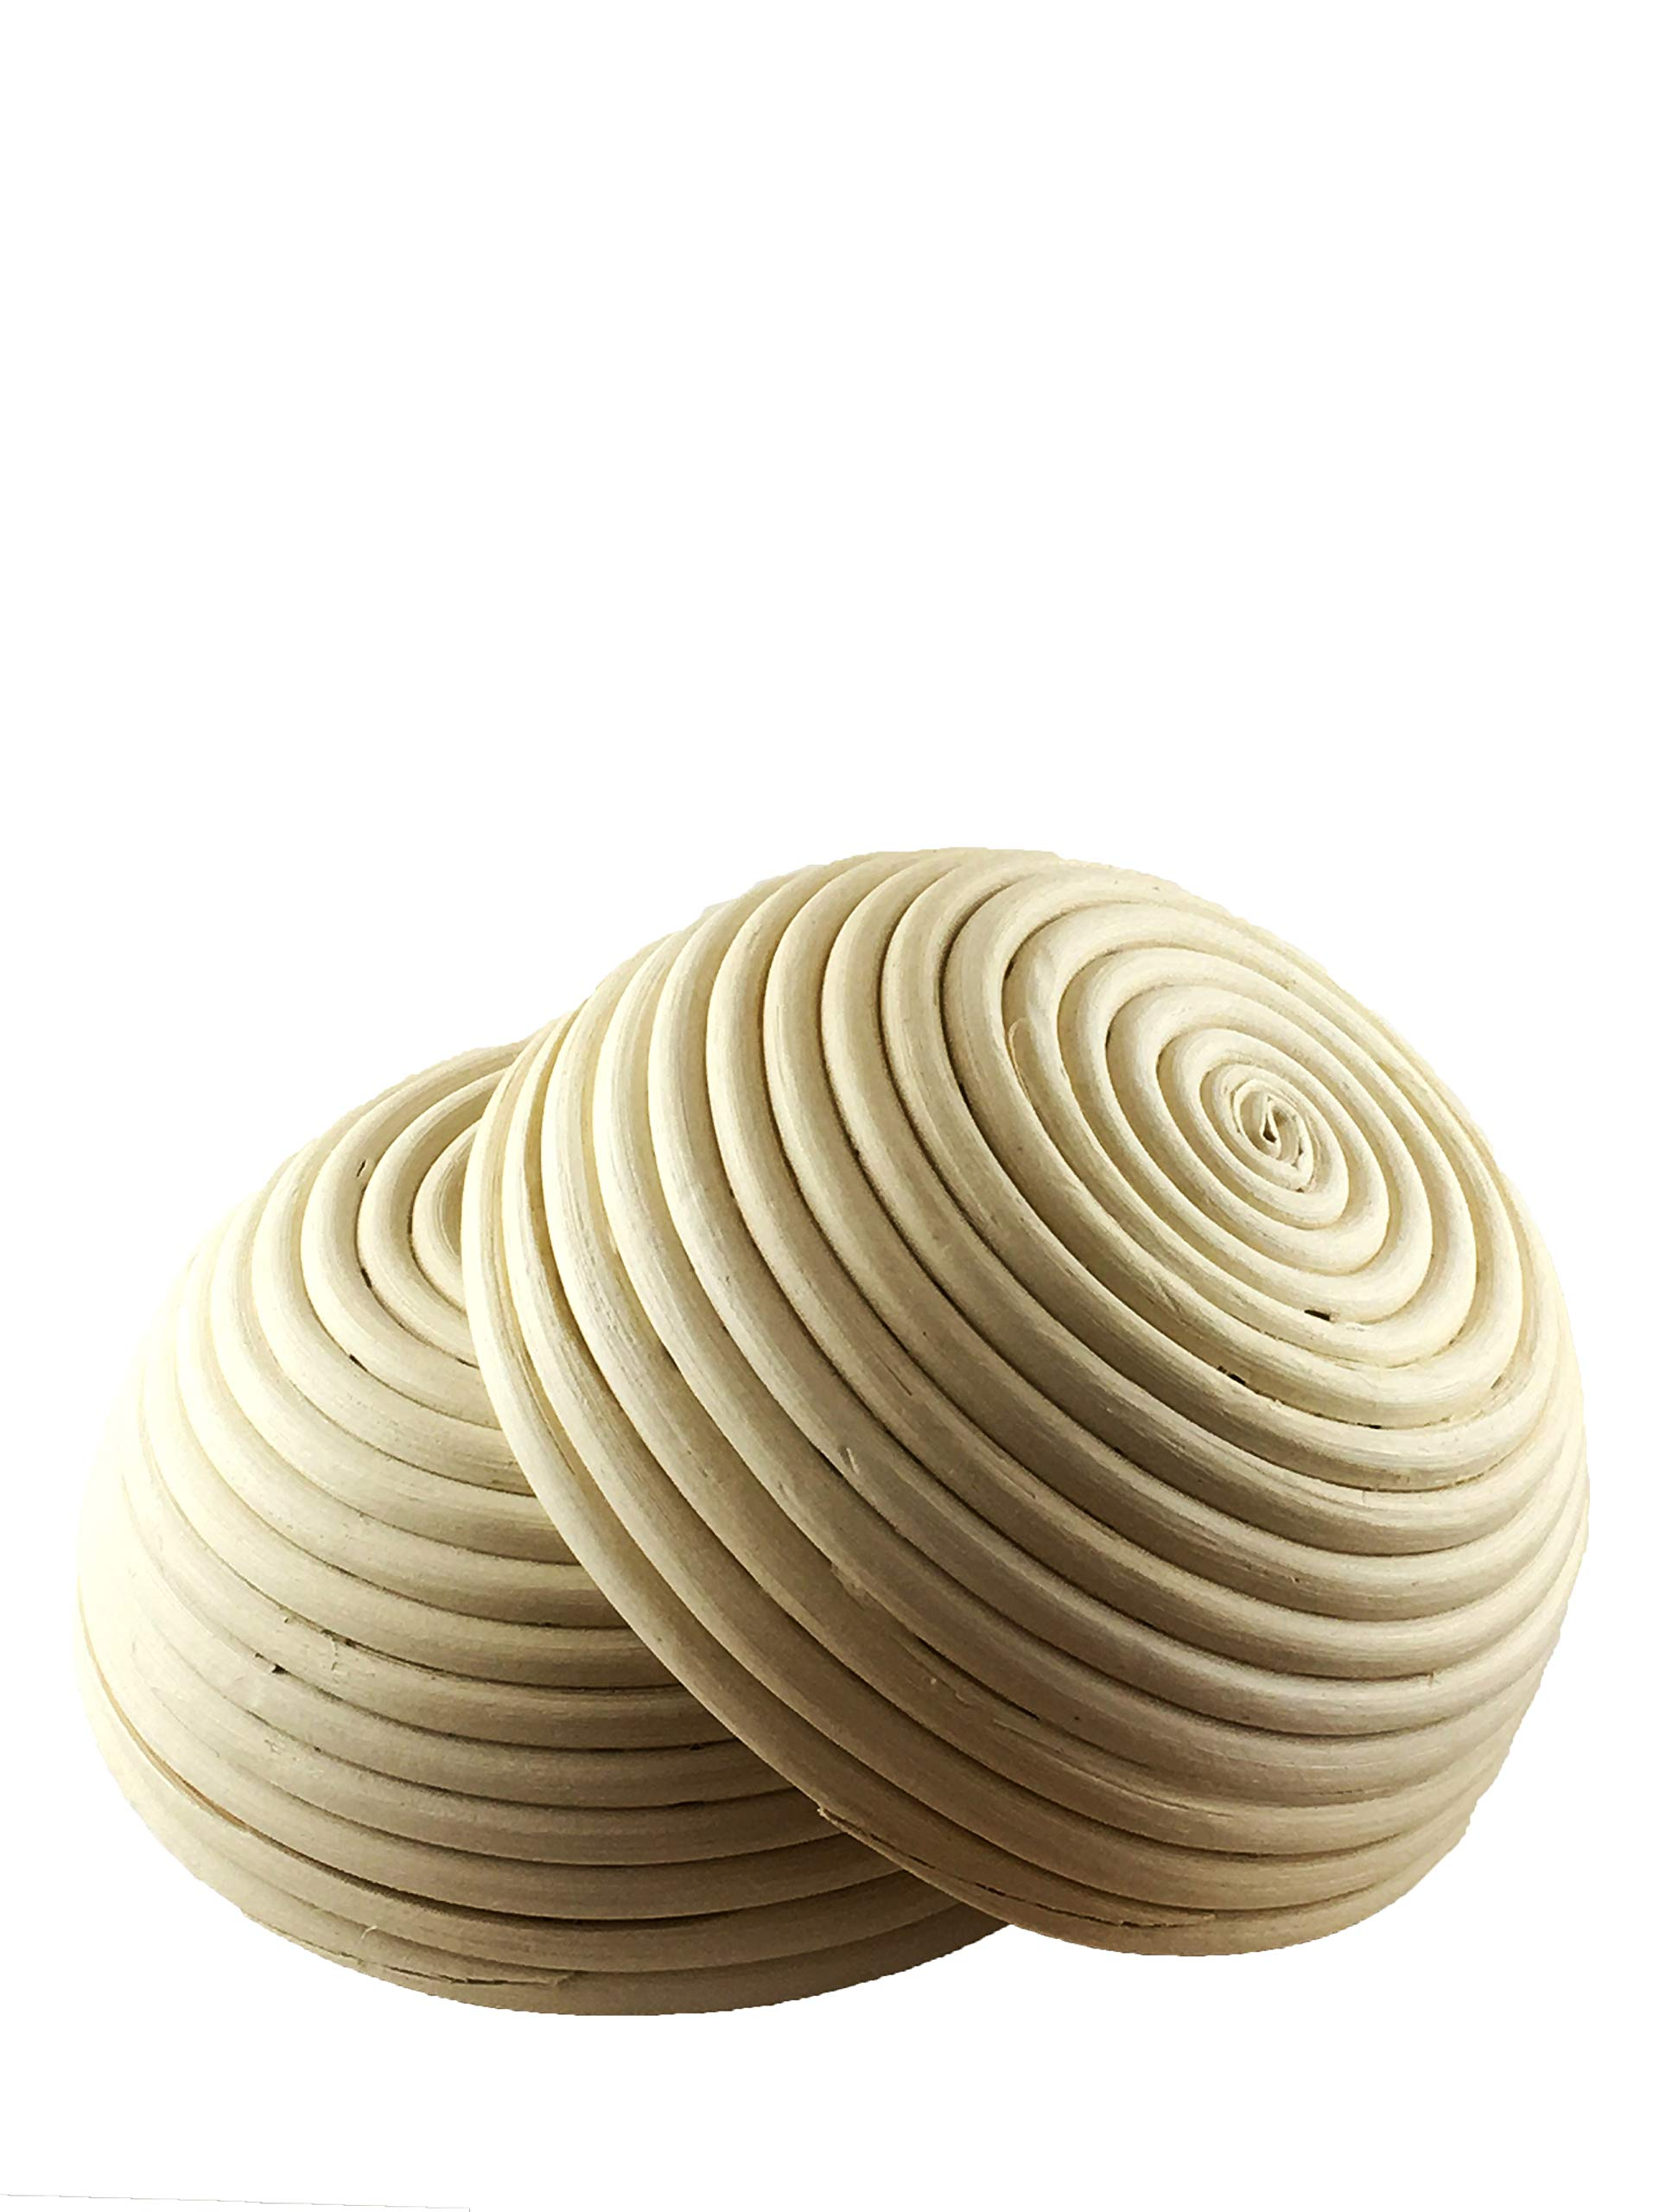 7 Inch Round Proofing Basket (Pack of 2) by Artisan Baking Co. Manufactured for professional made of rattan. Great for homemade sour dough bread (2) by Artisan Baking Co (Image #2)